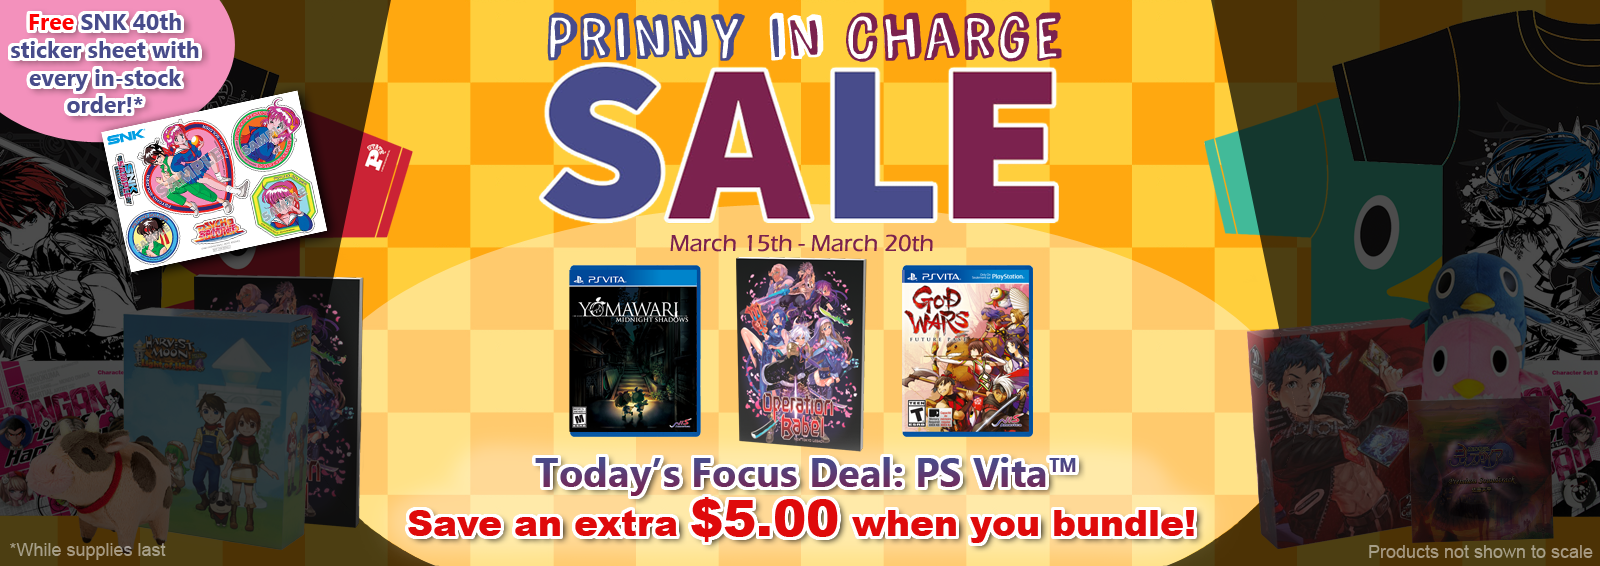 PS Vita Focus Deal